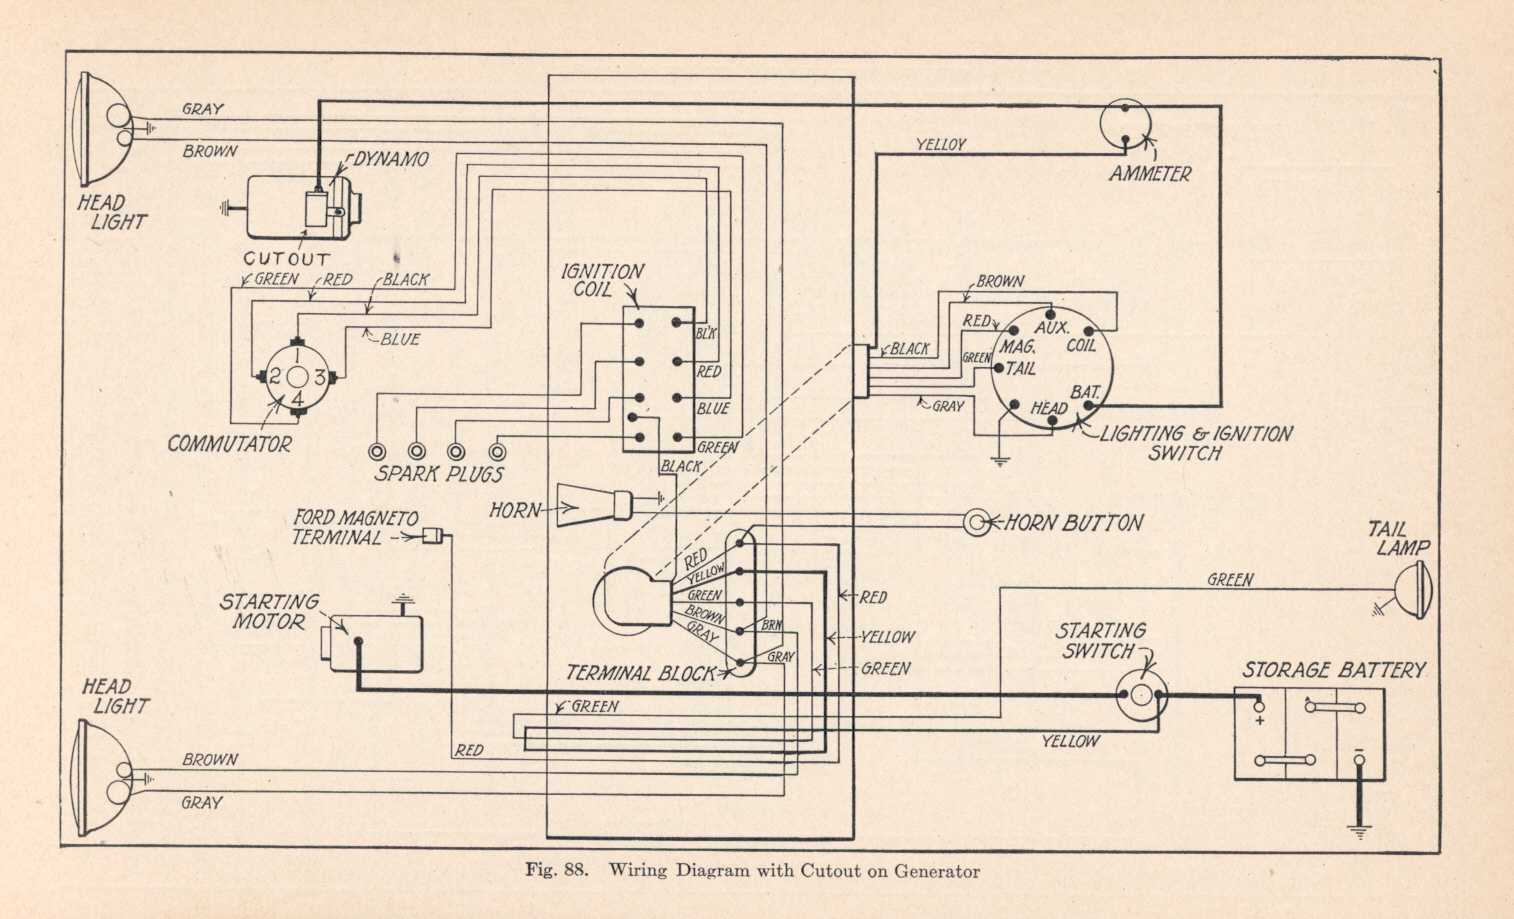 80032 model t ford forum amp meter wiring help needed model a ford generator wiring diagram at bayanpartner.co